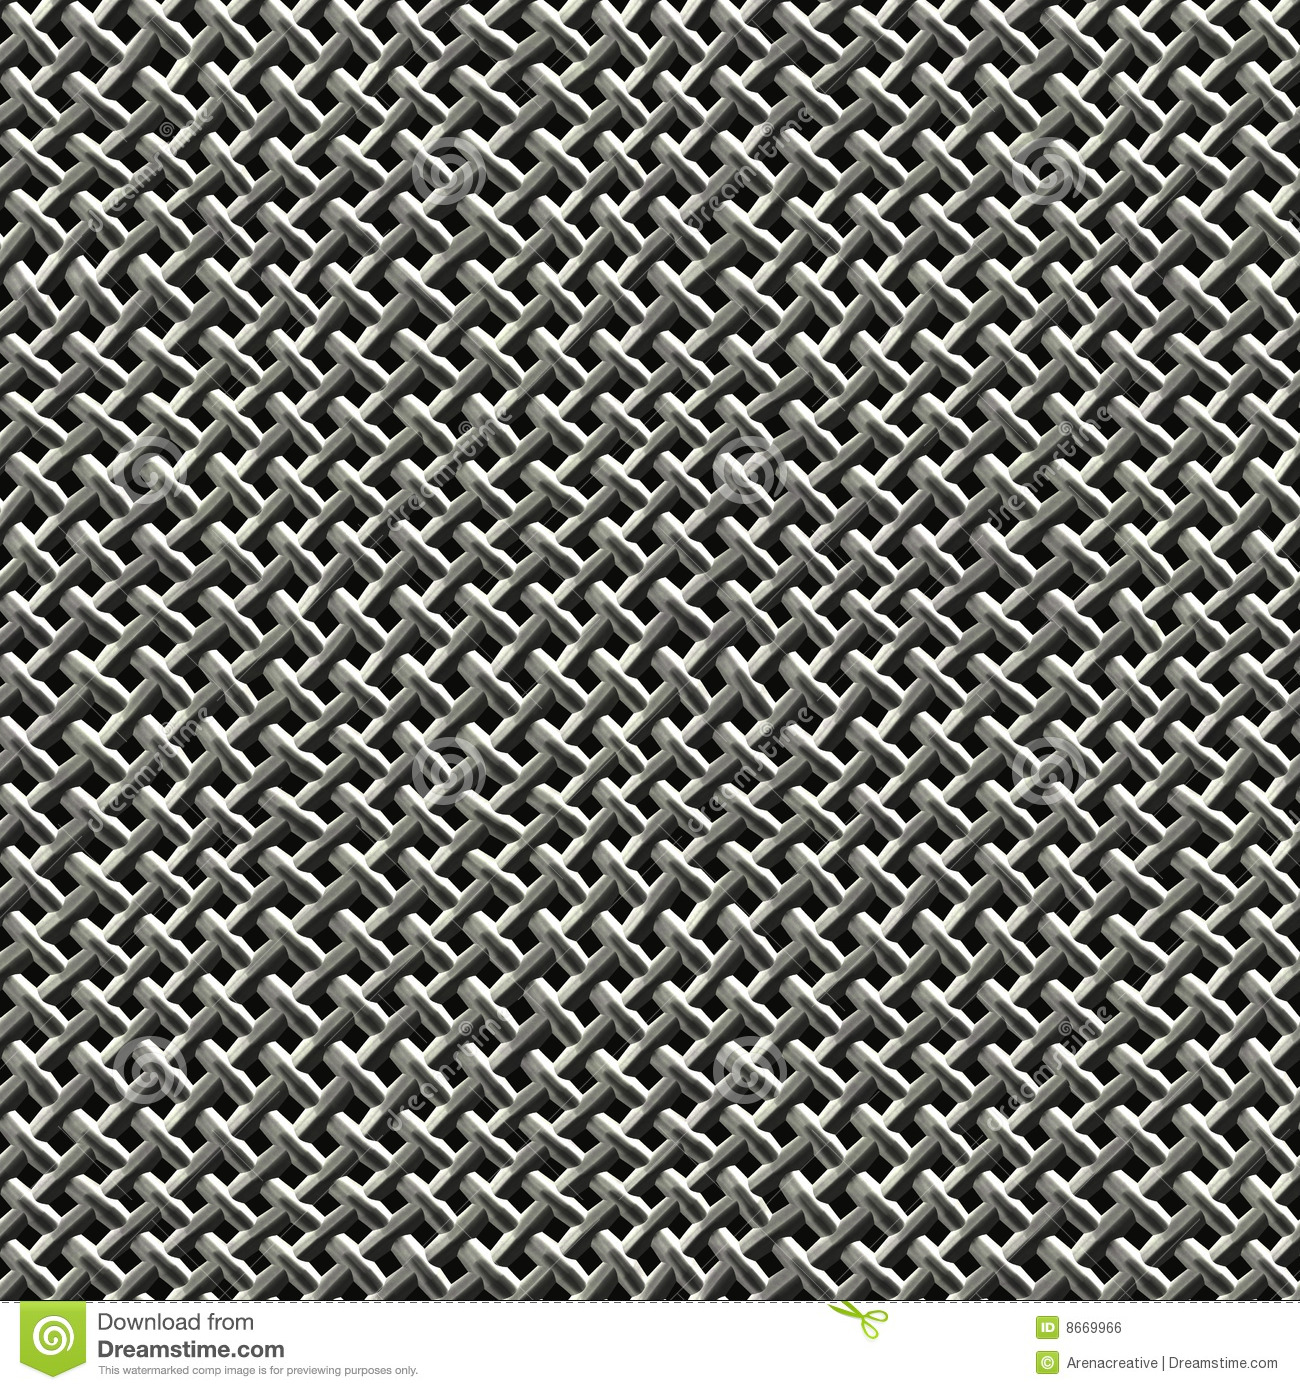 Metal Wire Mesh stock illustration. Illustration of gray - 8669966